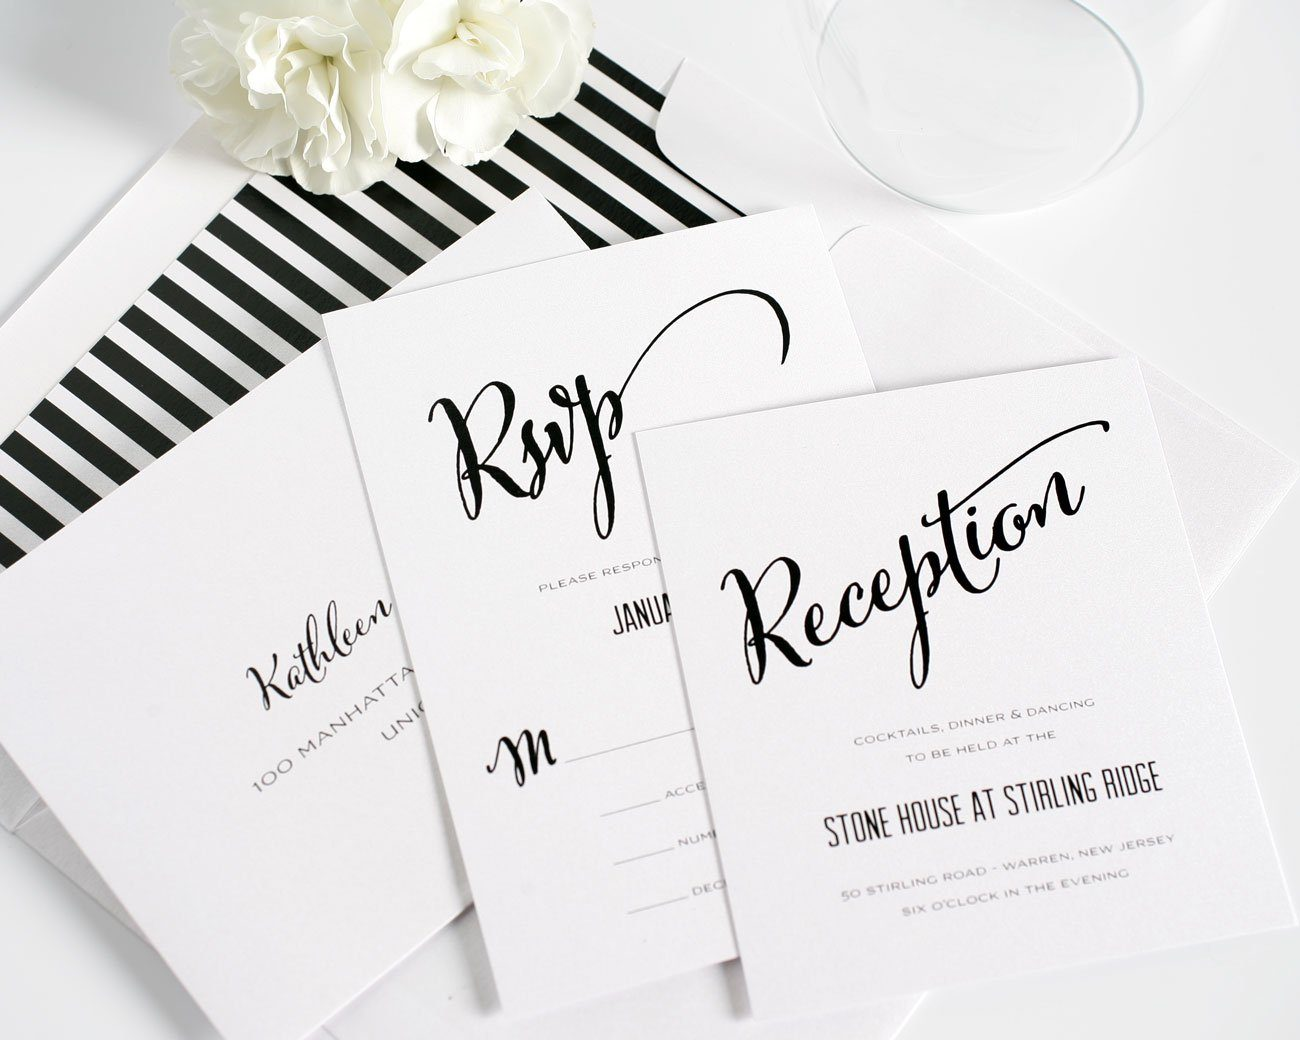 Mod black and white wedding invitations with striped envelope liner